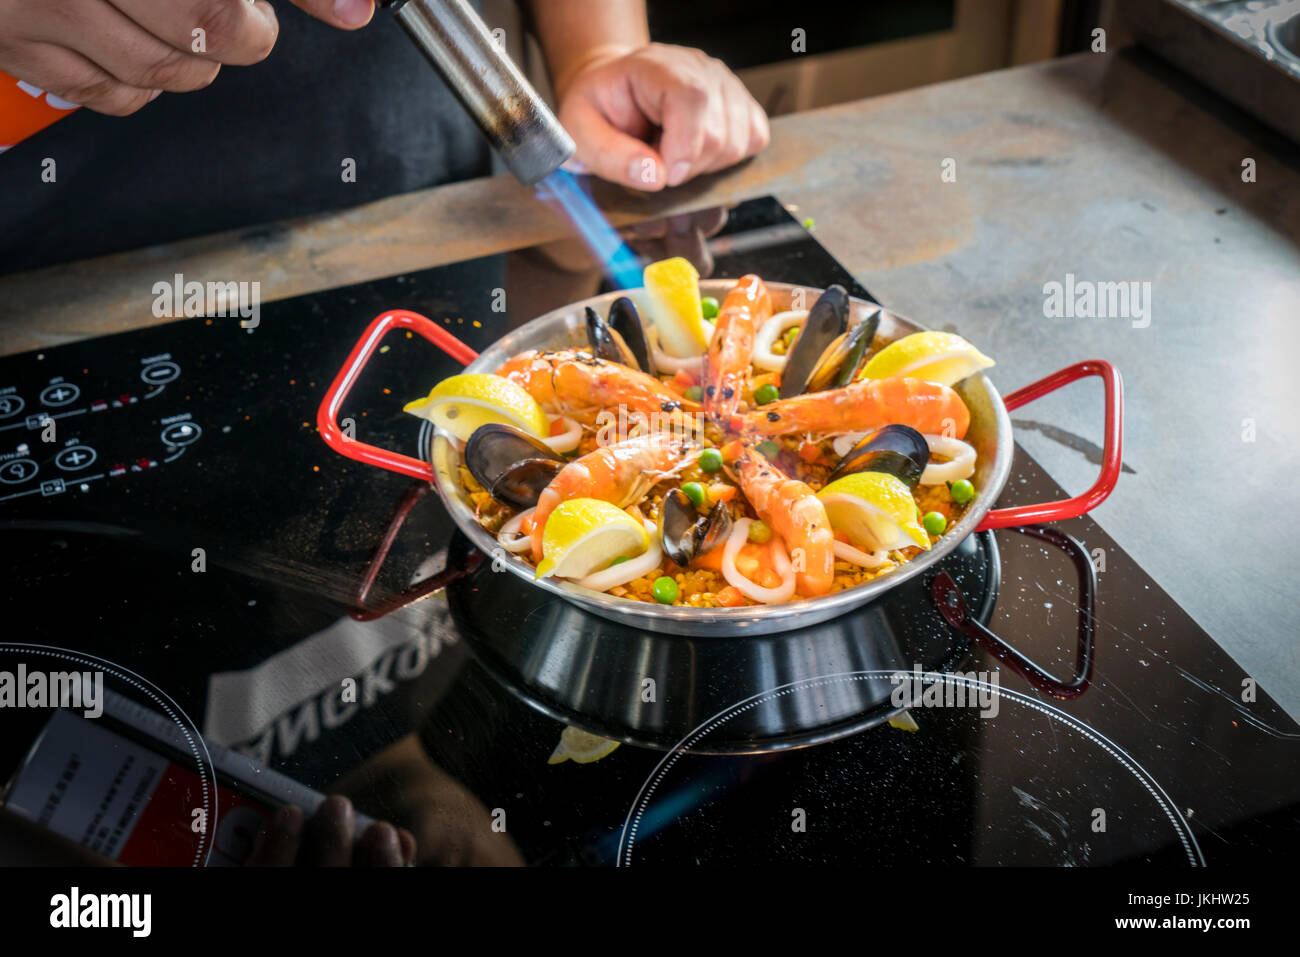 Chef is frying seafood of paella with burner - Stock Image